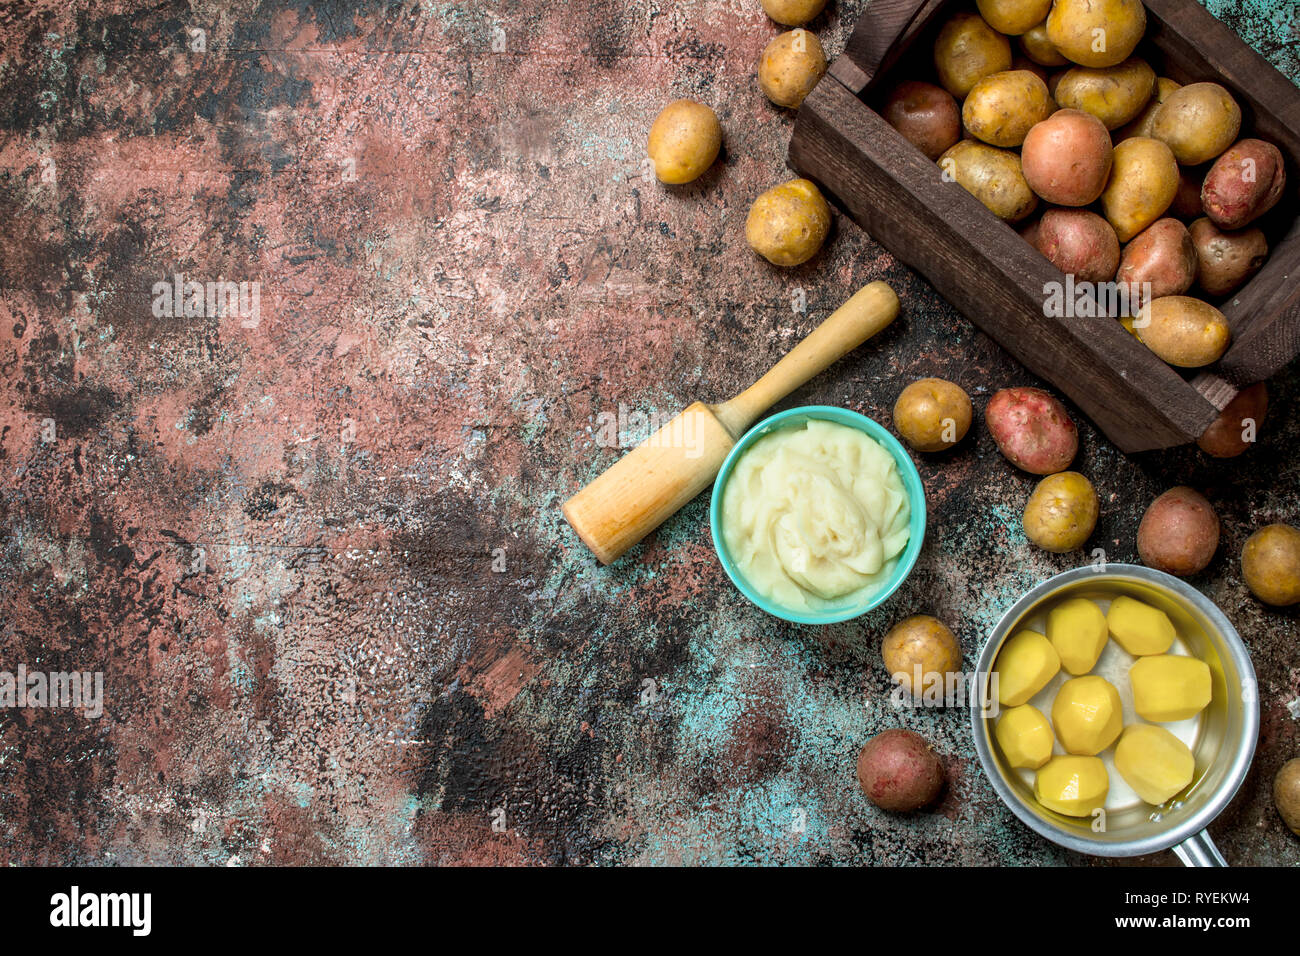 Mashed potatoes in a bowl. On a rustic background. - Stock Image